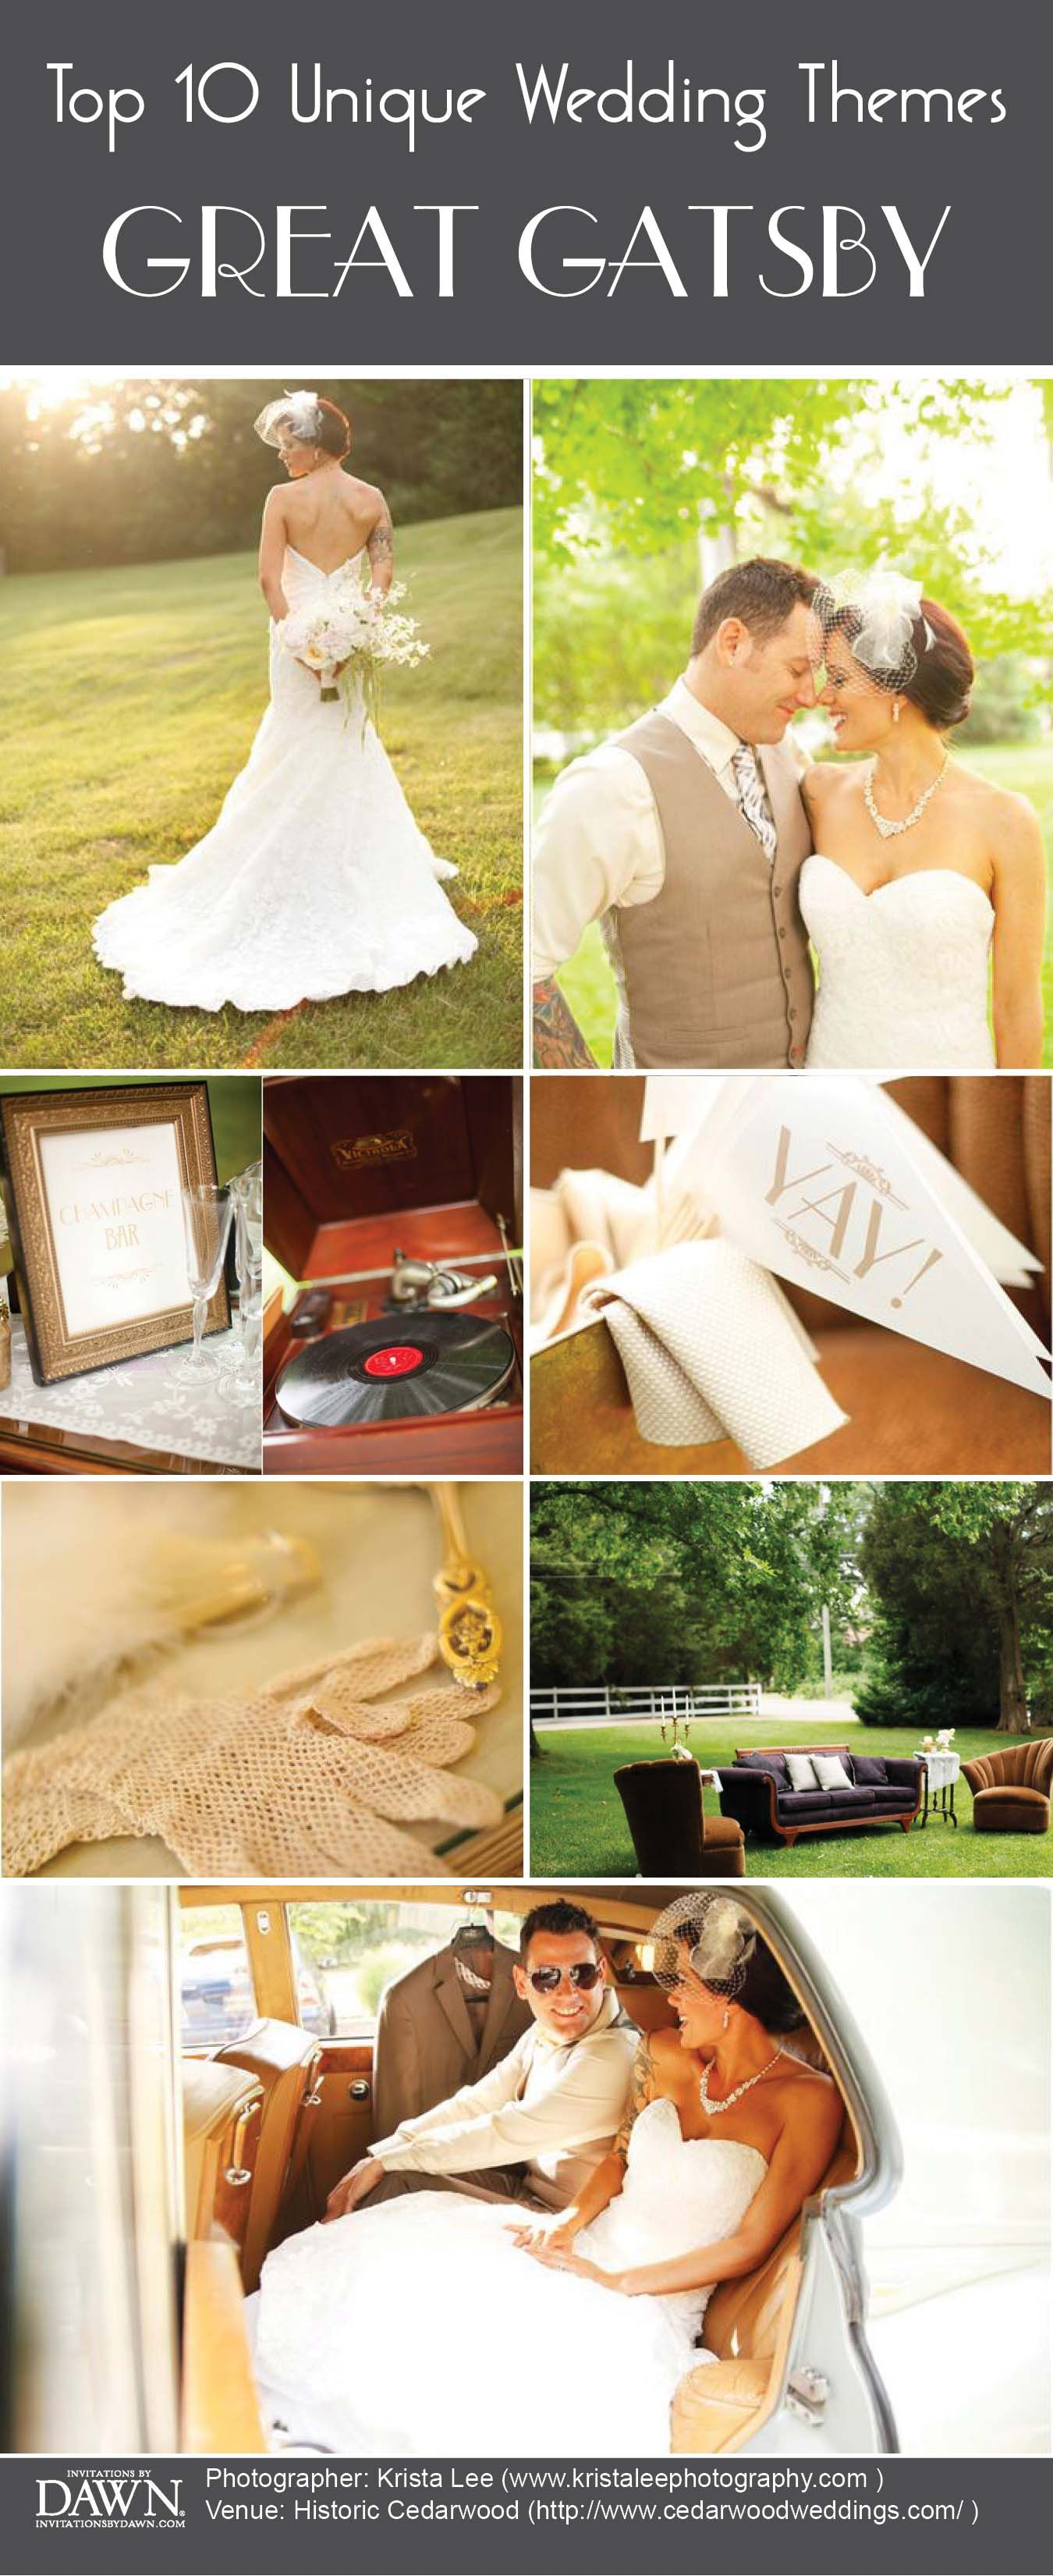 Top 10 Wedding Themes Roaring 20s Inspired Pinterest Wedding